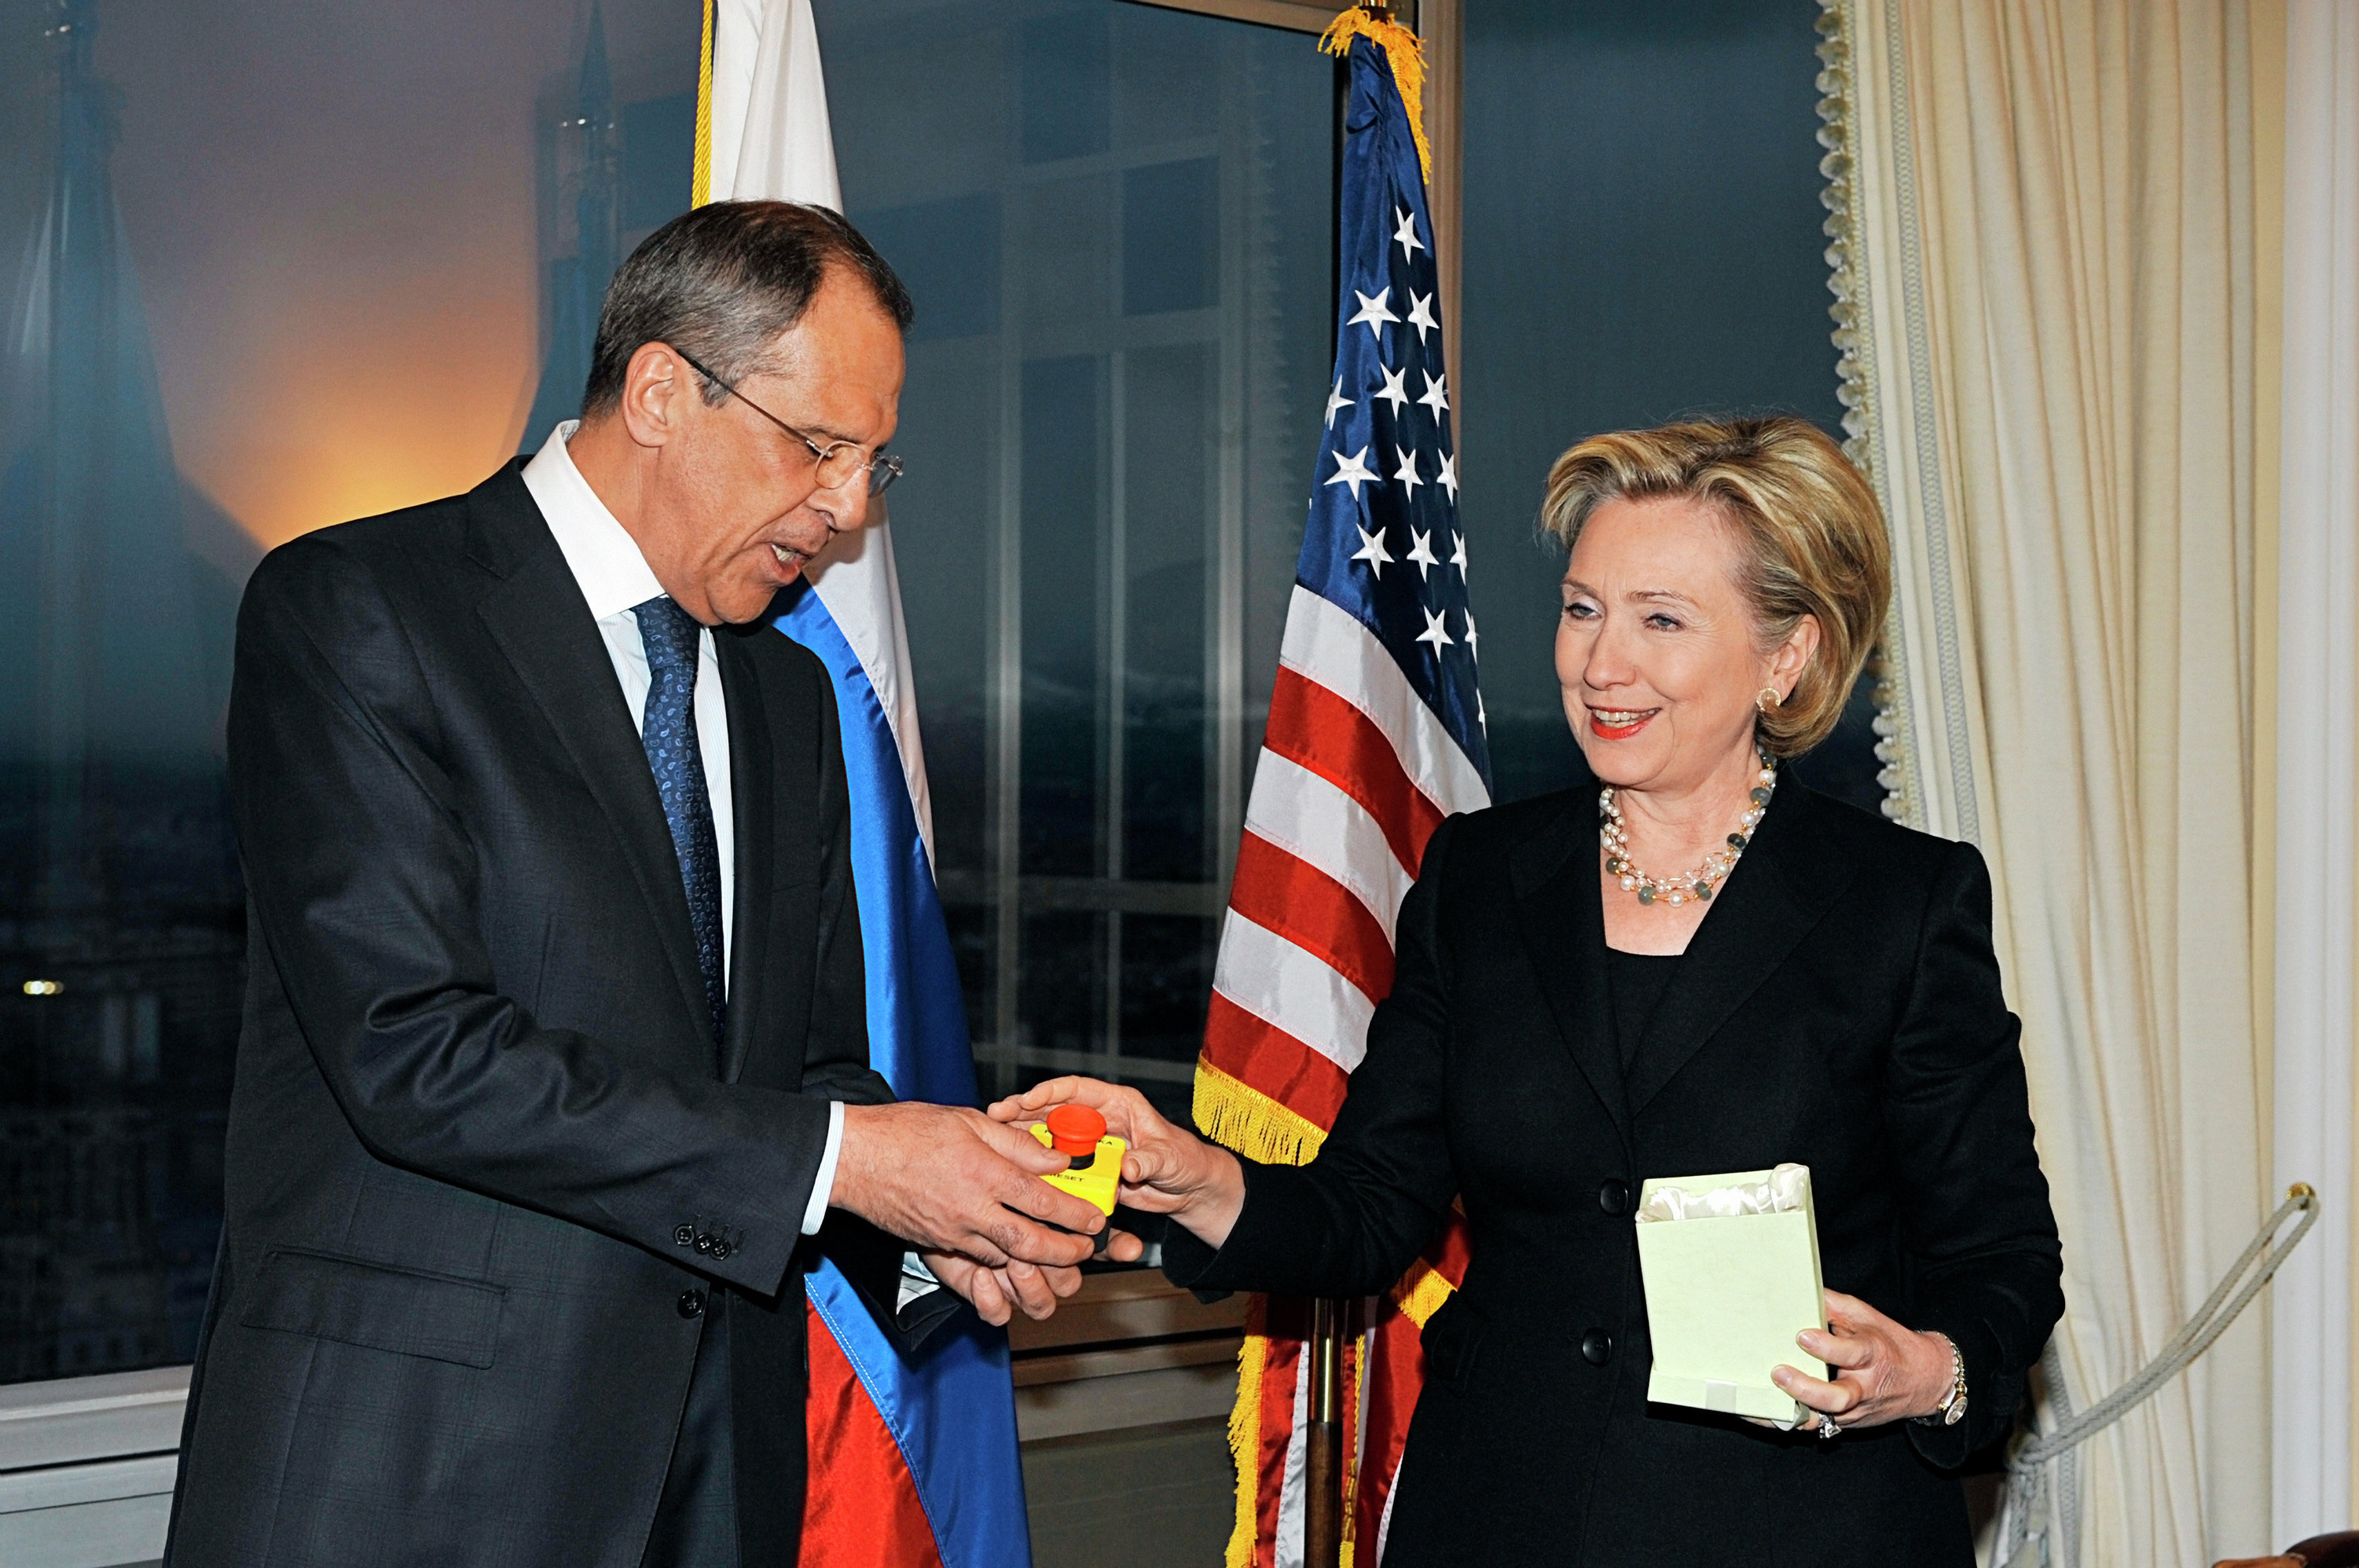 U.S. Secretary of State Hillary Clinton gives Russian Foreign Minister Sergei Lavrov the block with a red button marked reset in English and overload in Russian during a meeting in Geneva on March 6, 2009